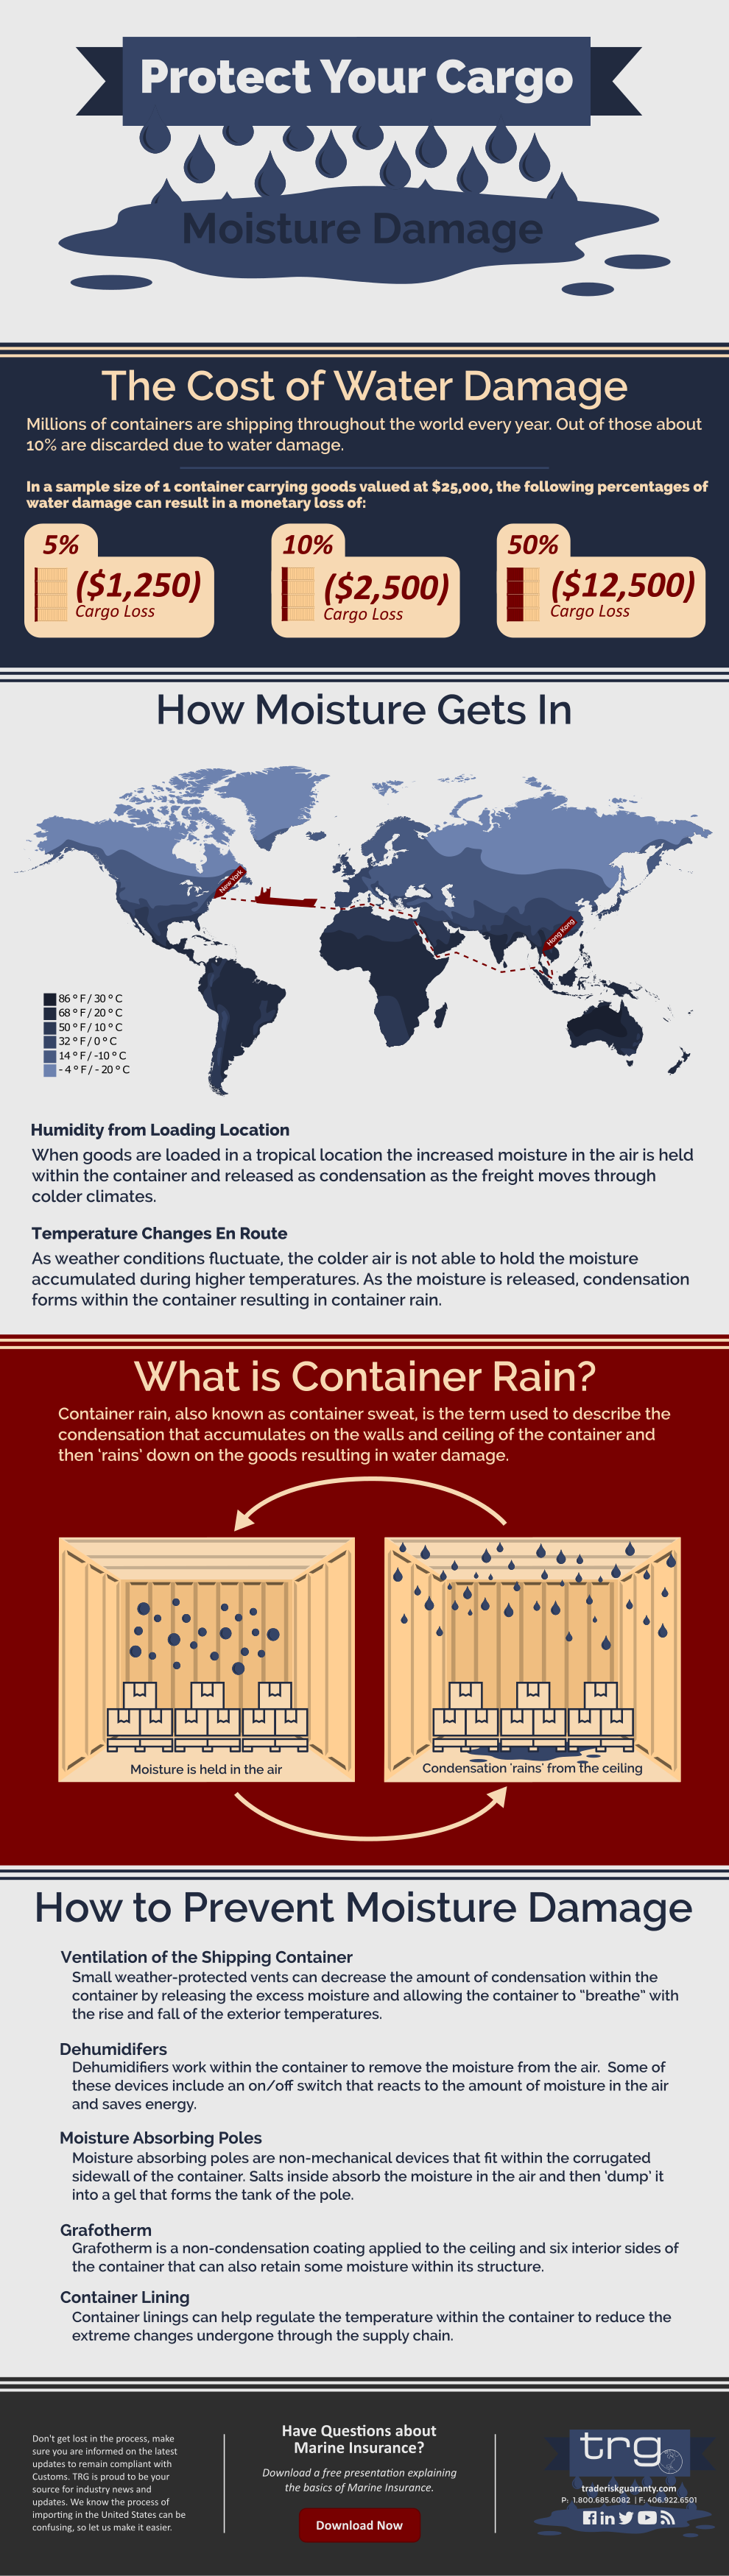 Trade Risk Guaranty's infographic explaining how cargo gets water damage inside the container.